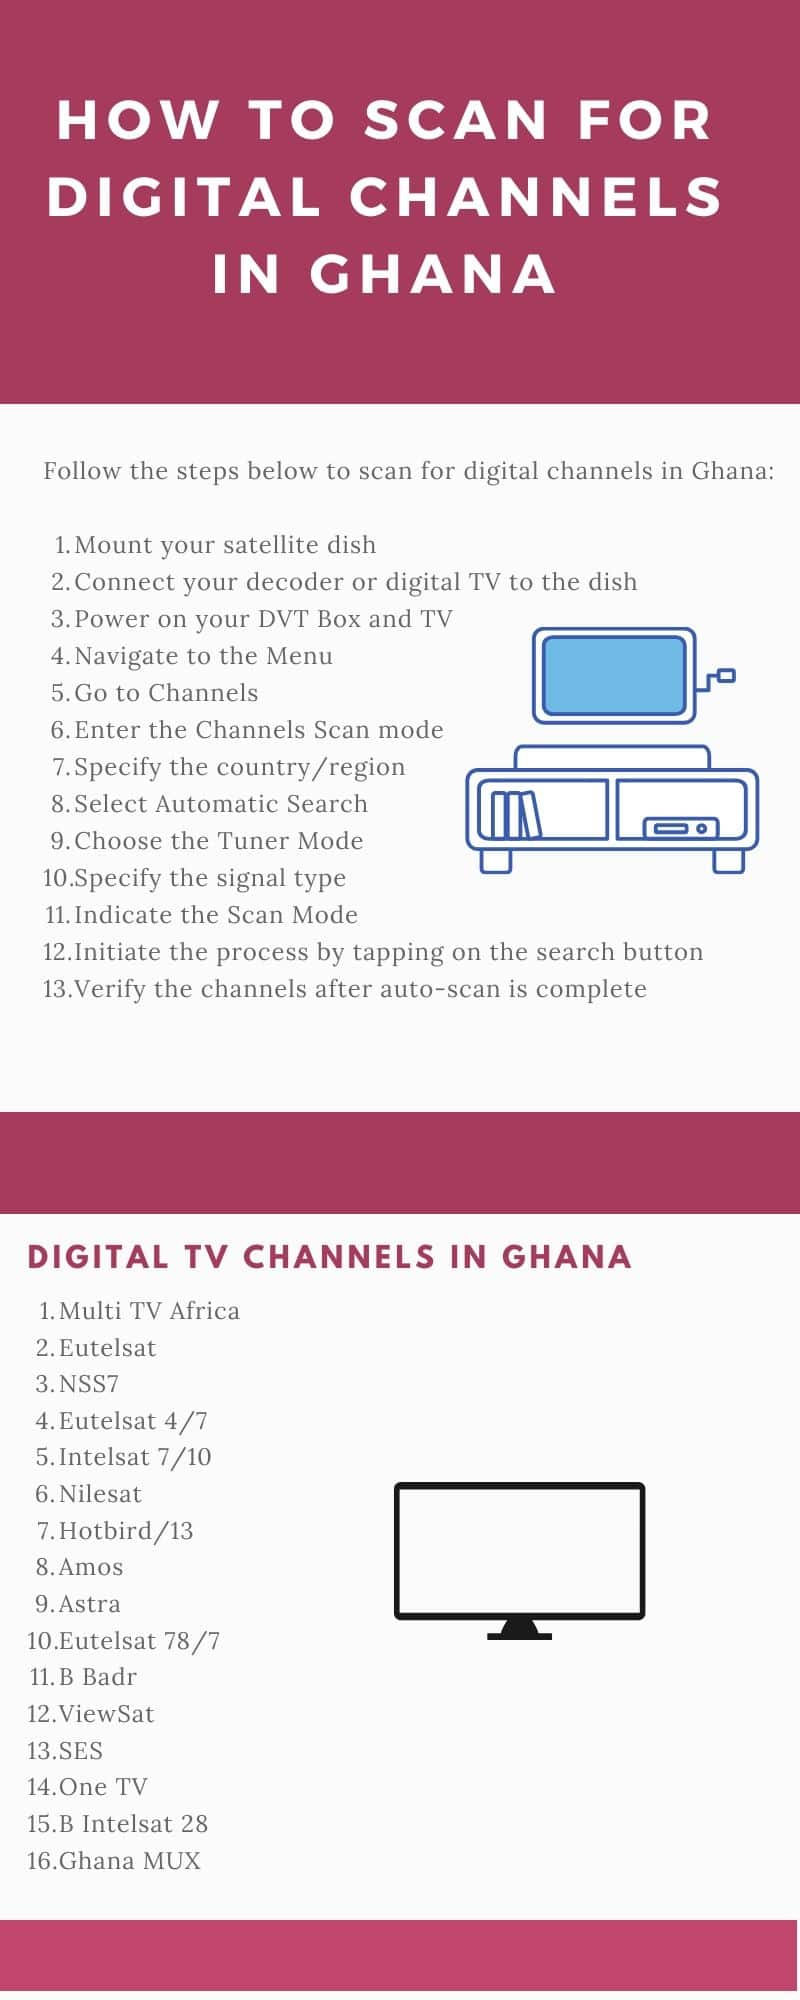 How to scan for digital channels in Ghana